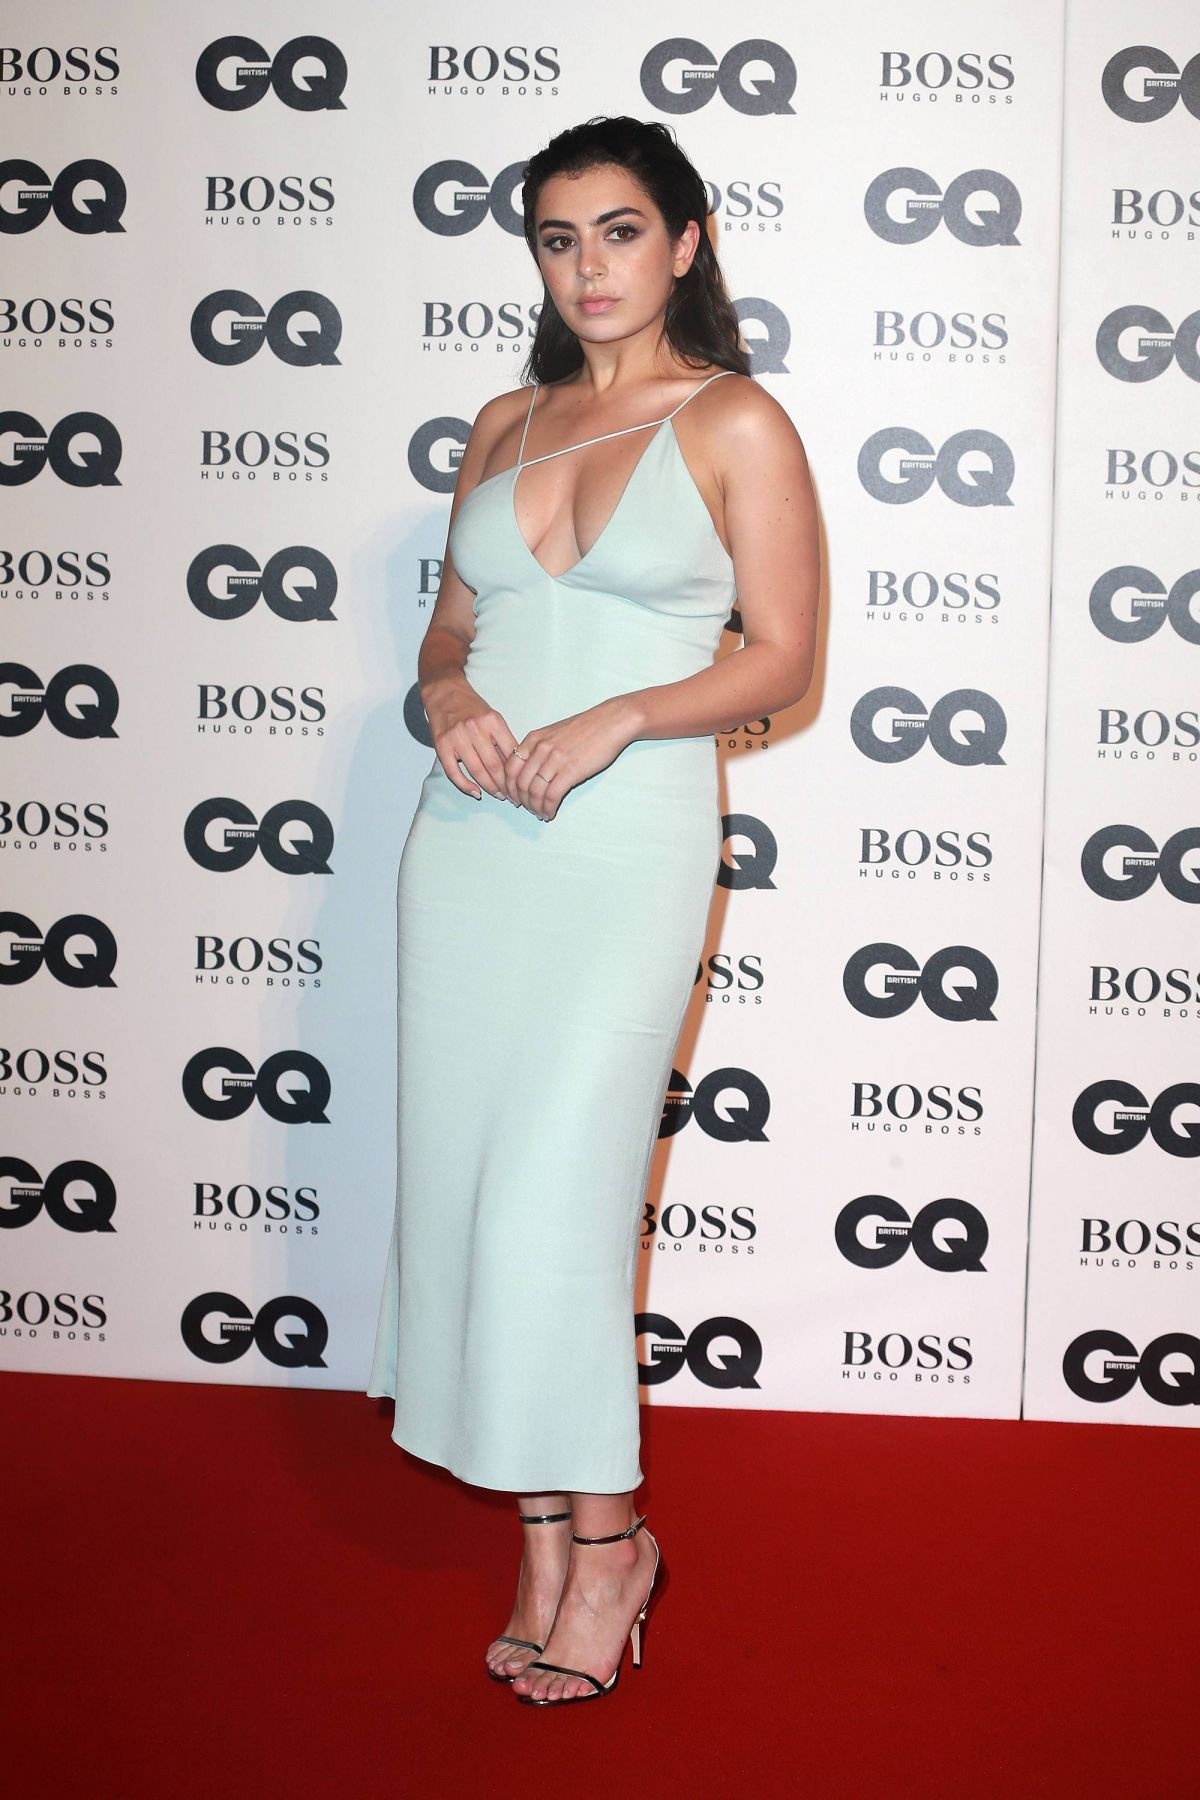 Charli XCX Attends 2019 GQ Men of The Year Awards in